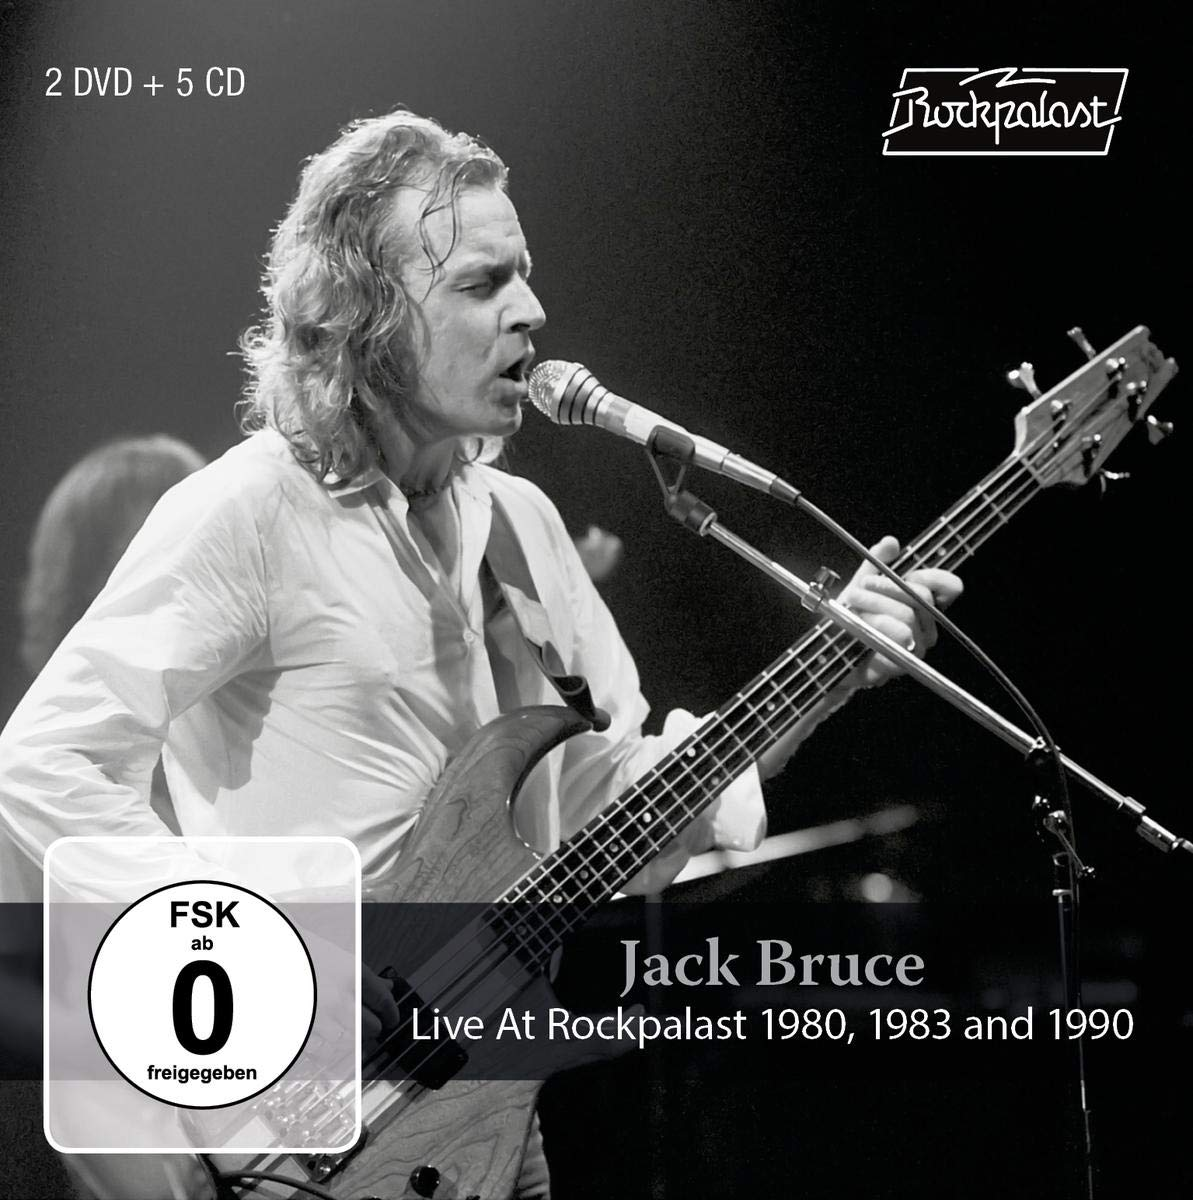 Jack Bruce - Live At Rockpalast 1980, 1983 and 1990 (2019) [FLAC] Download